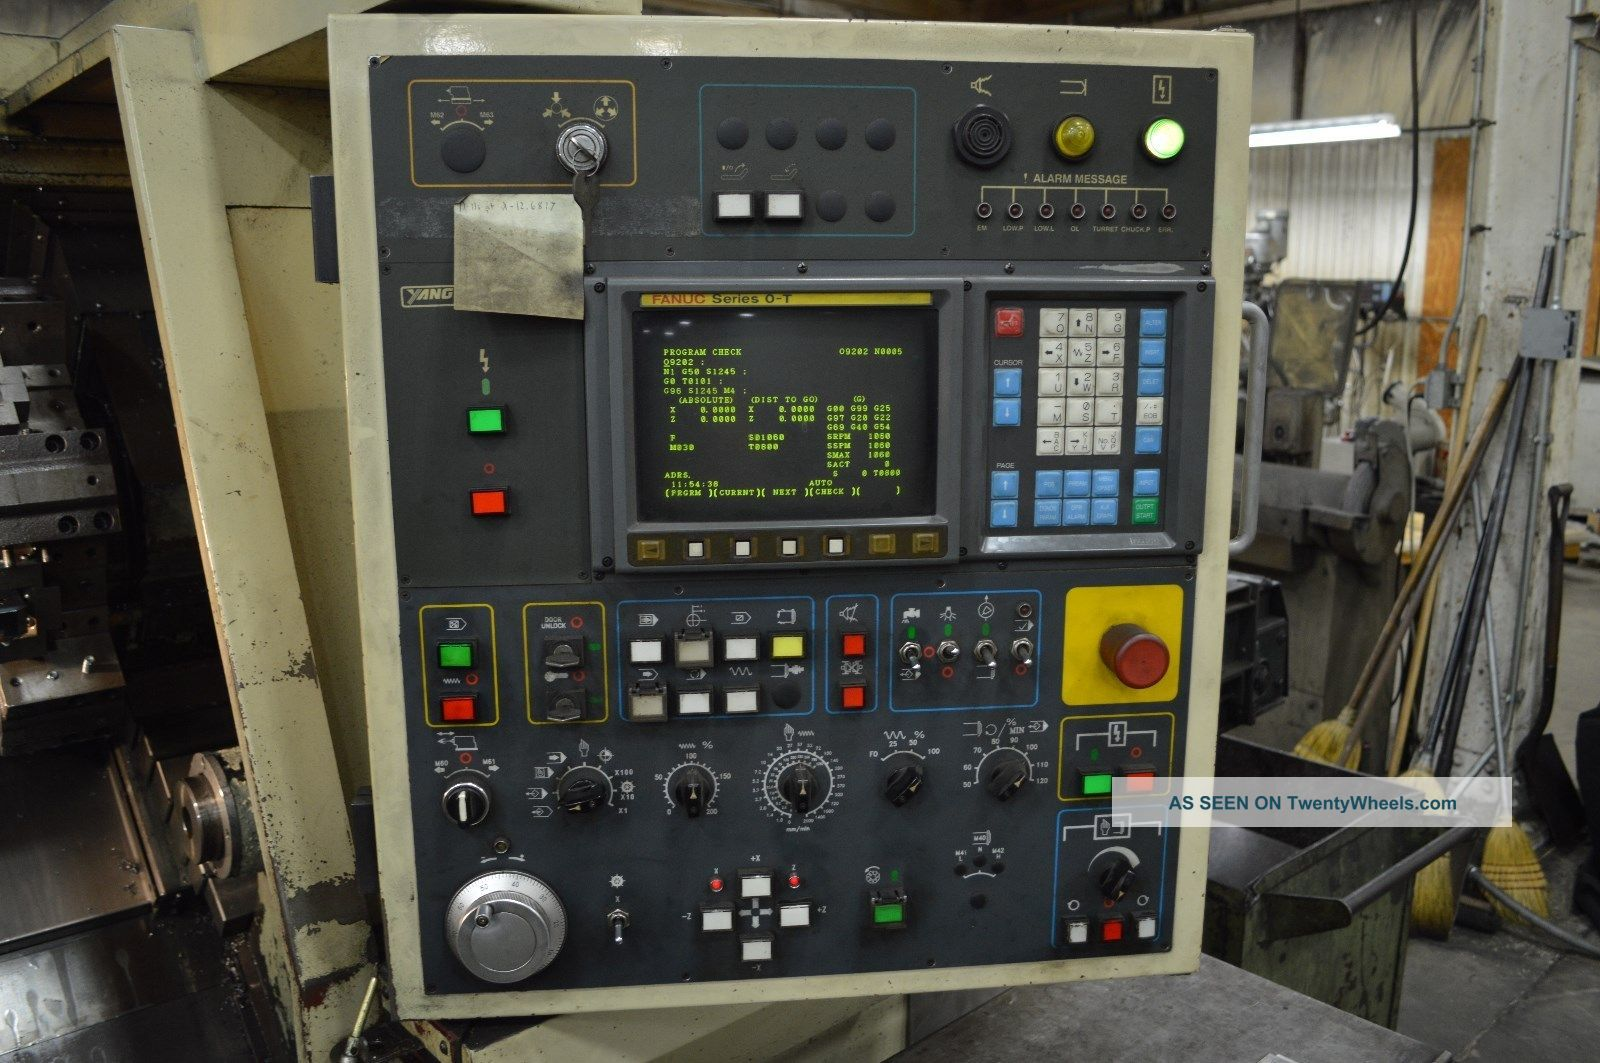 97 Yang Ml - 28a Under Power With All Yang & Fanuc Manuals